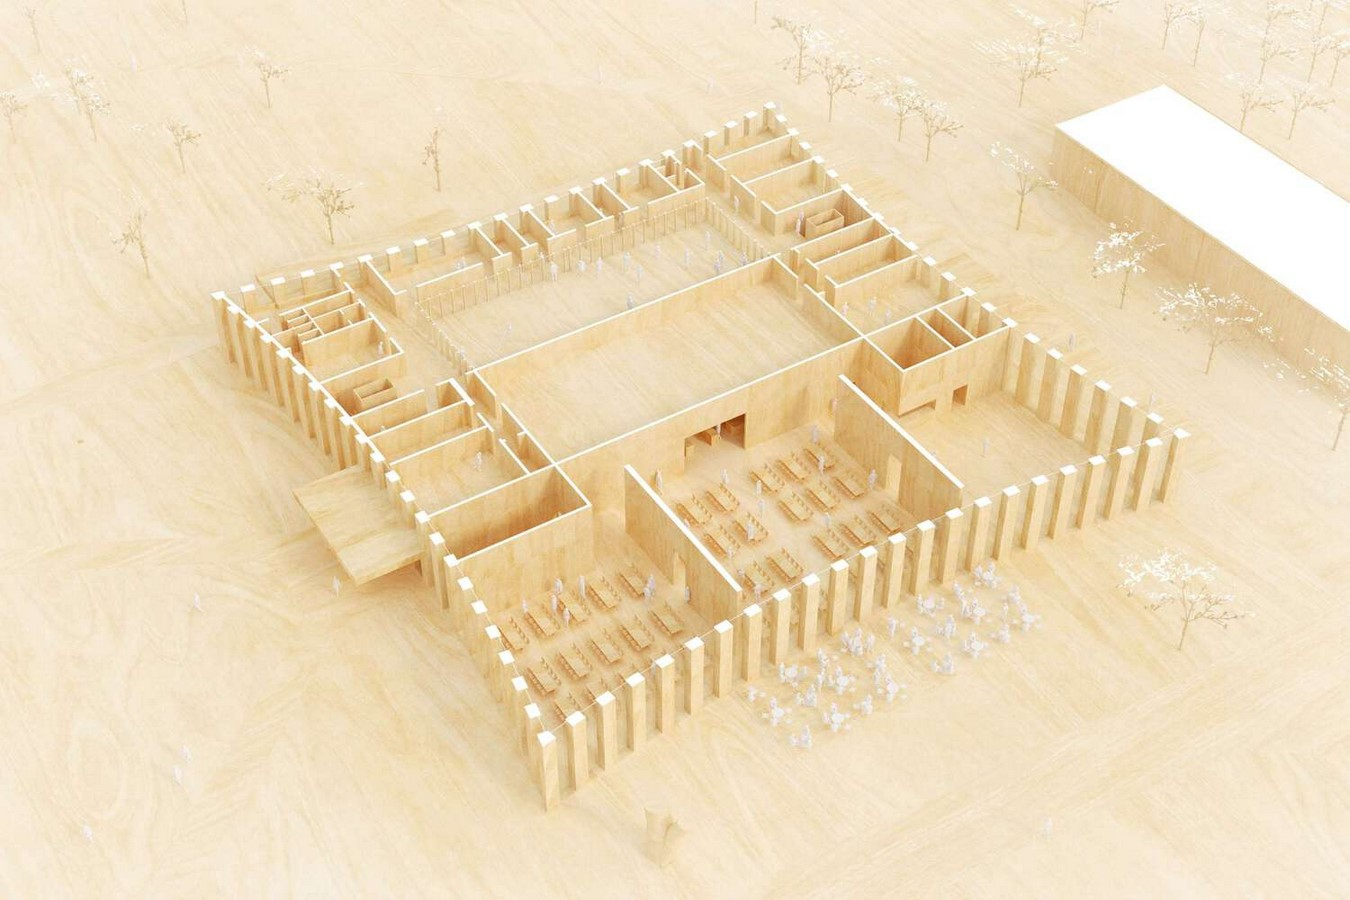 Competition to Design Mess Building for Military Academy in Stockholm won by Tham & Videgård Sheet3